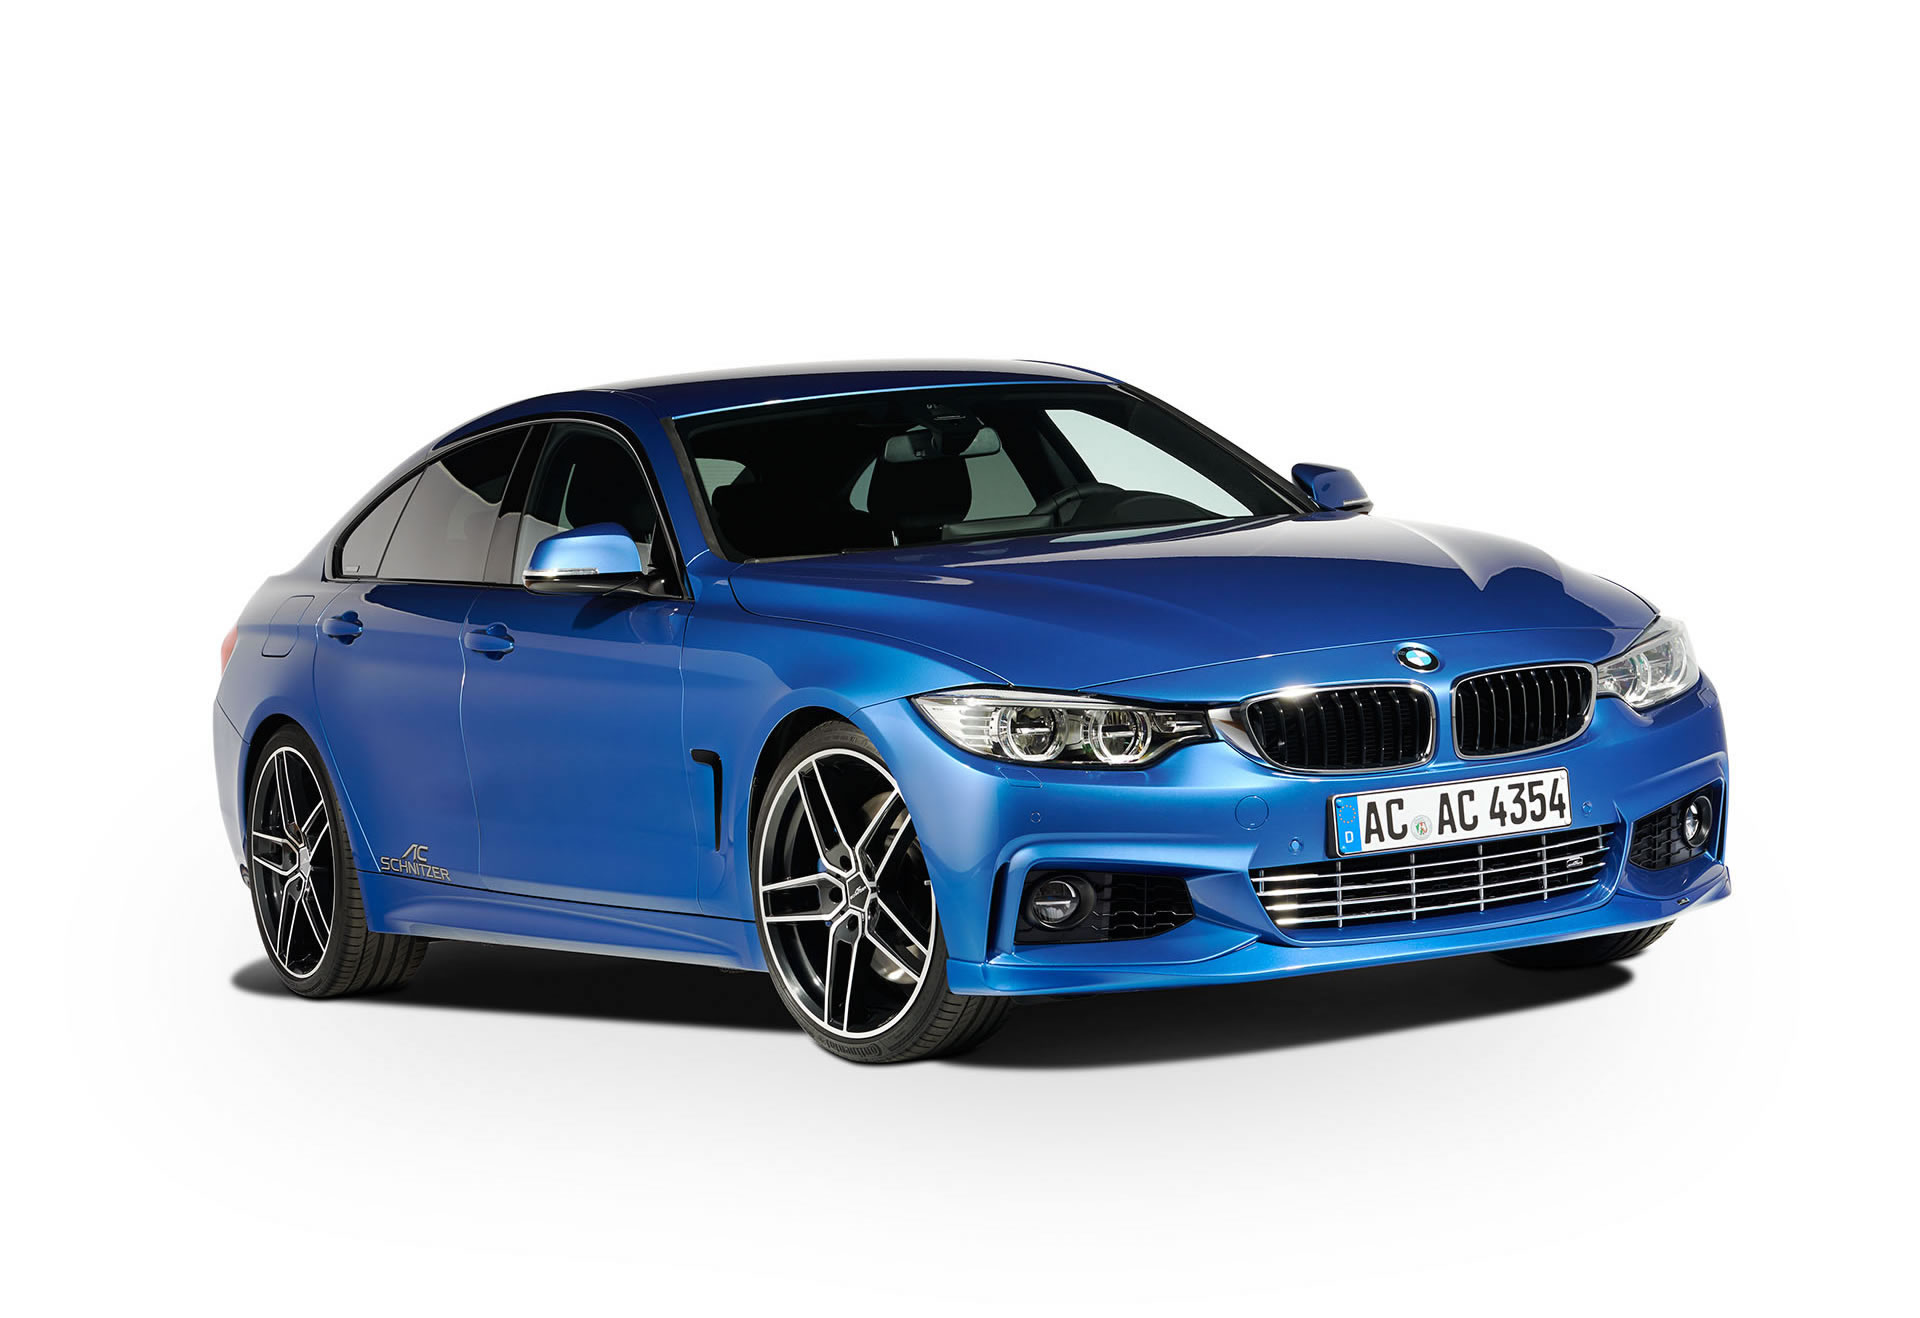 2015 BMW 435i Gran Coupe by AC Schnitzer - front photo, blue color ...